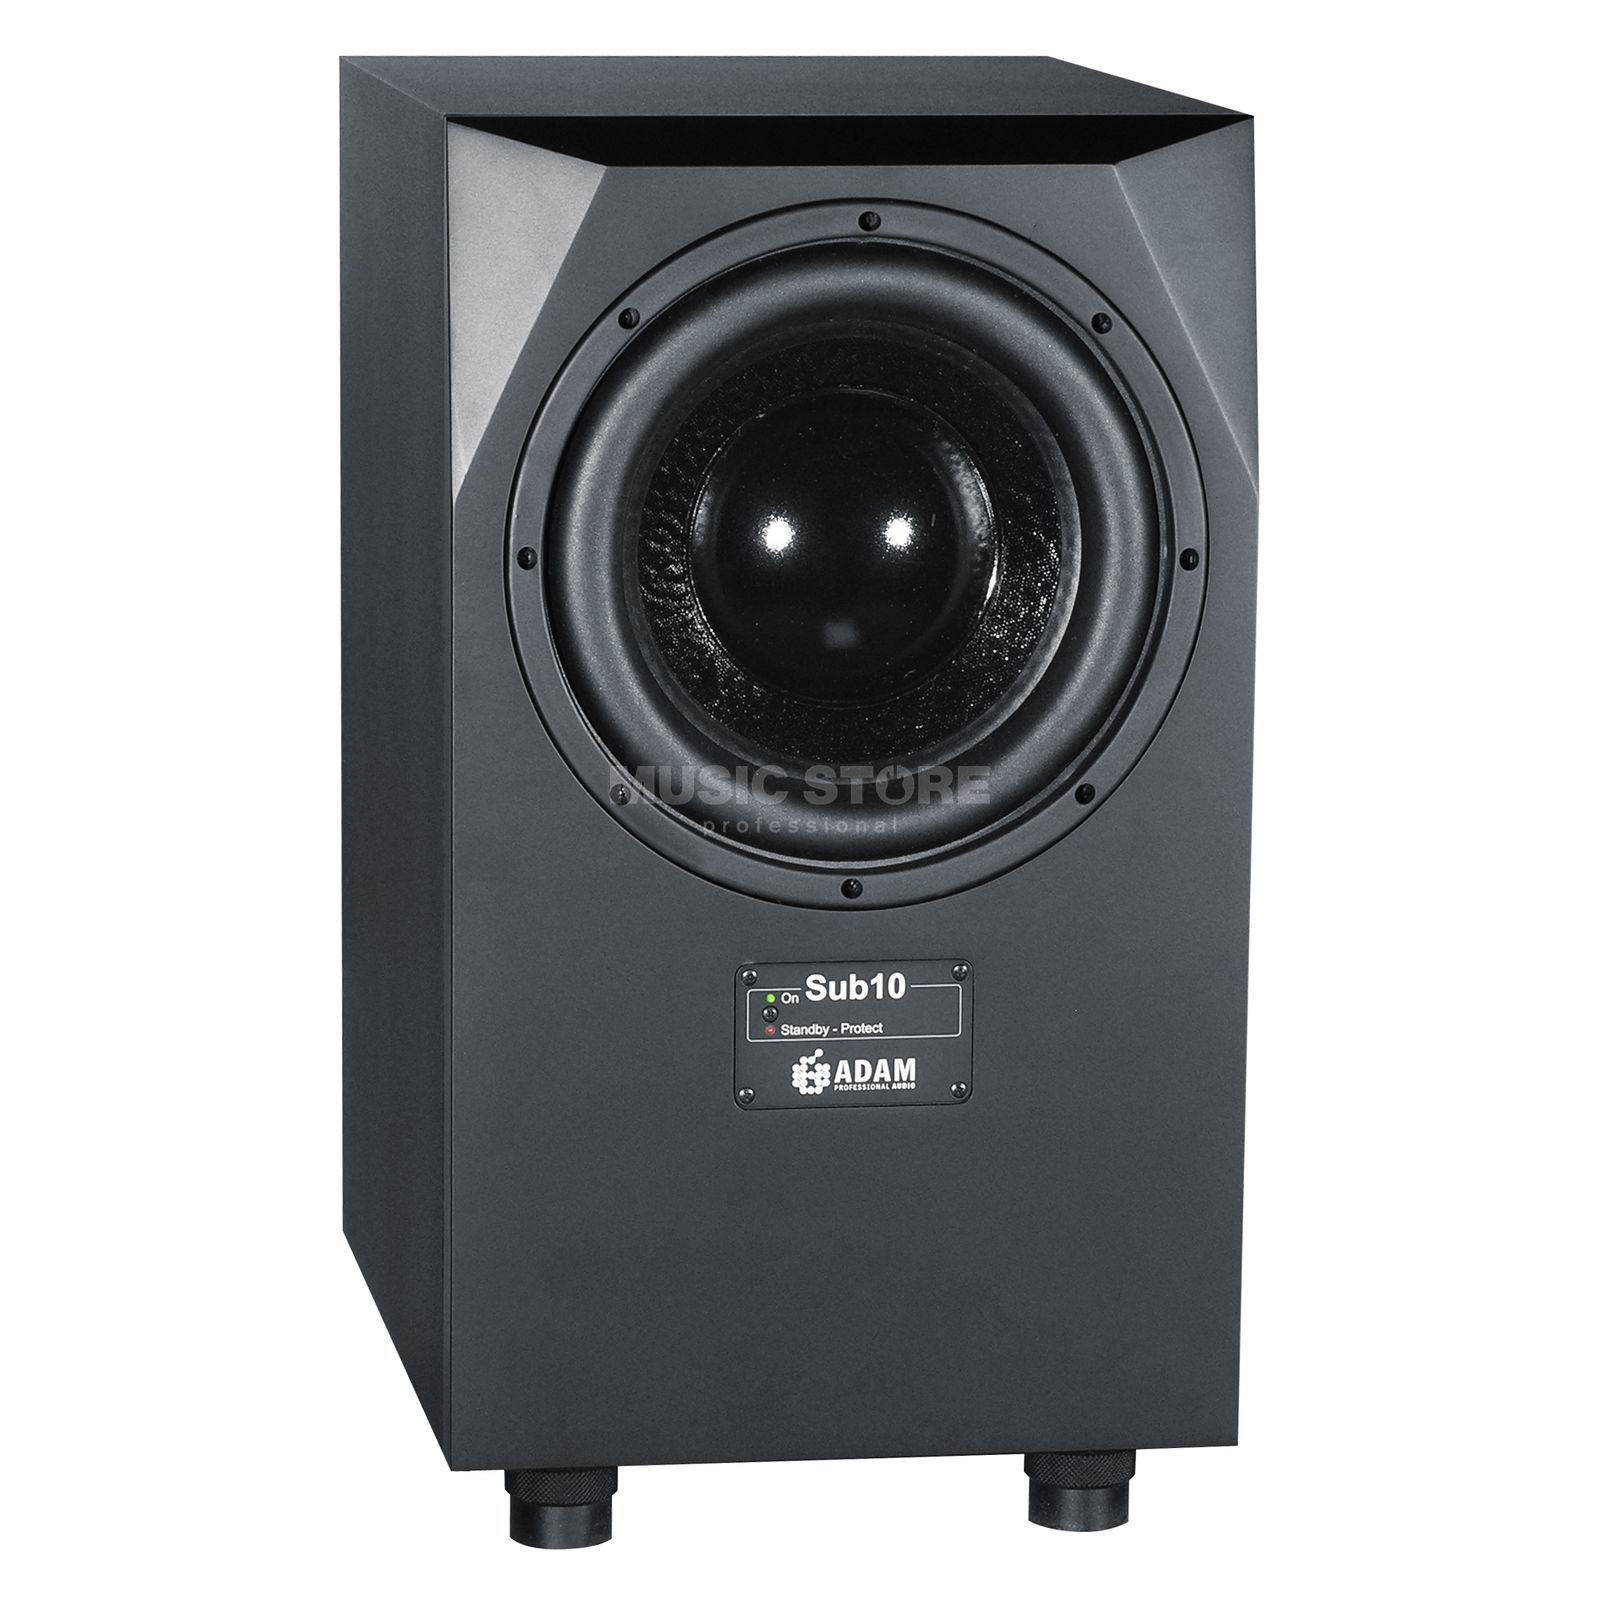 "Adam Audio SUB 10 Subwoofer active 10"" Woofer, 200w Product Image"